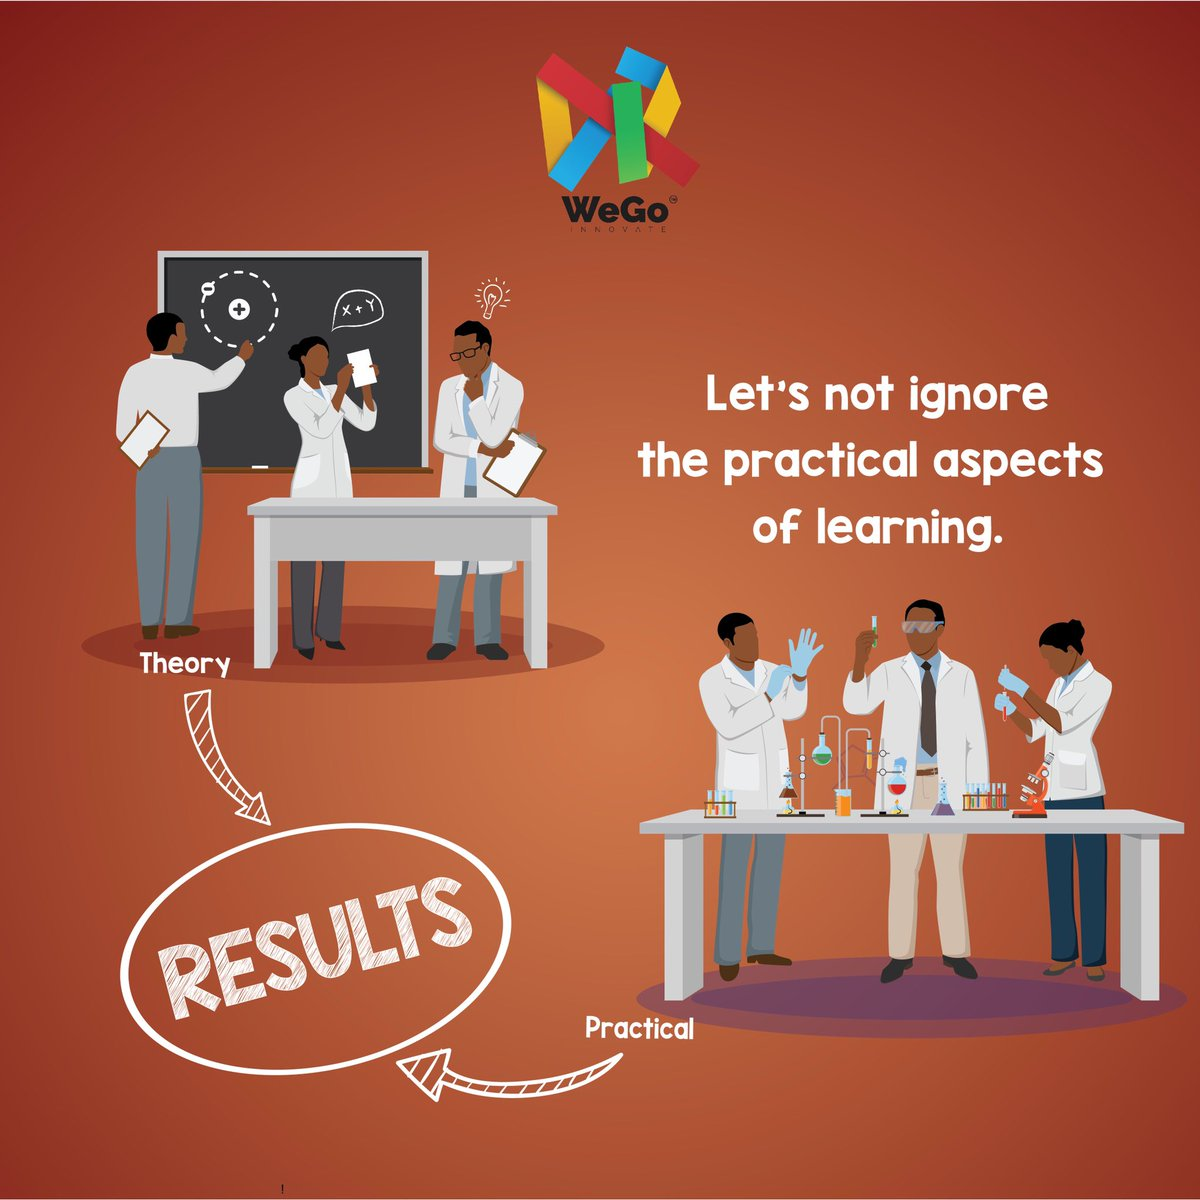 The practical aspects of learning aren't optional, they are very important. Do not ignore it.  #engineeringbasics  #gh4stem  #engineeringlife  #engineeringtech  #engineeringschool  #engineeringstudents  #engineeringlife  #wegoinnovate #engineeringisfunpic.twitter.com/CI3RZnYLFD